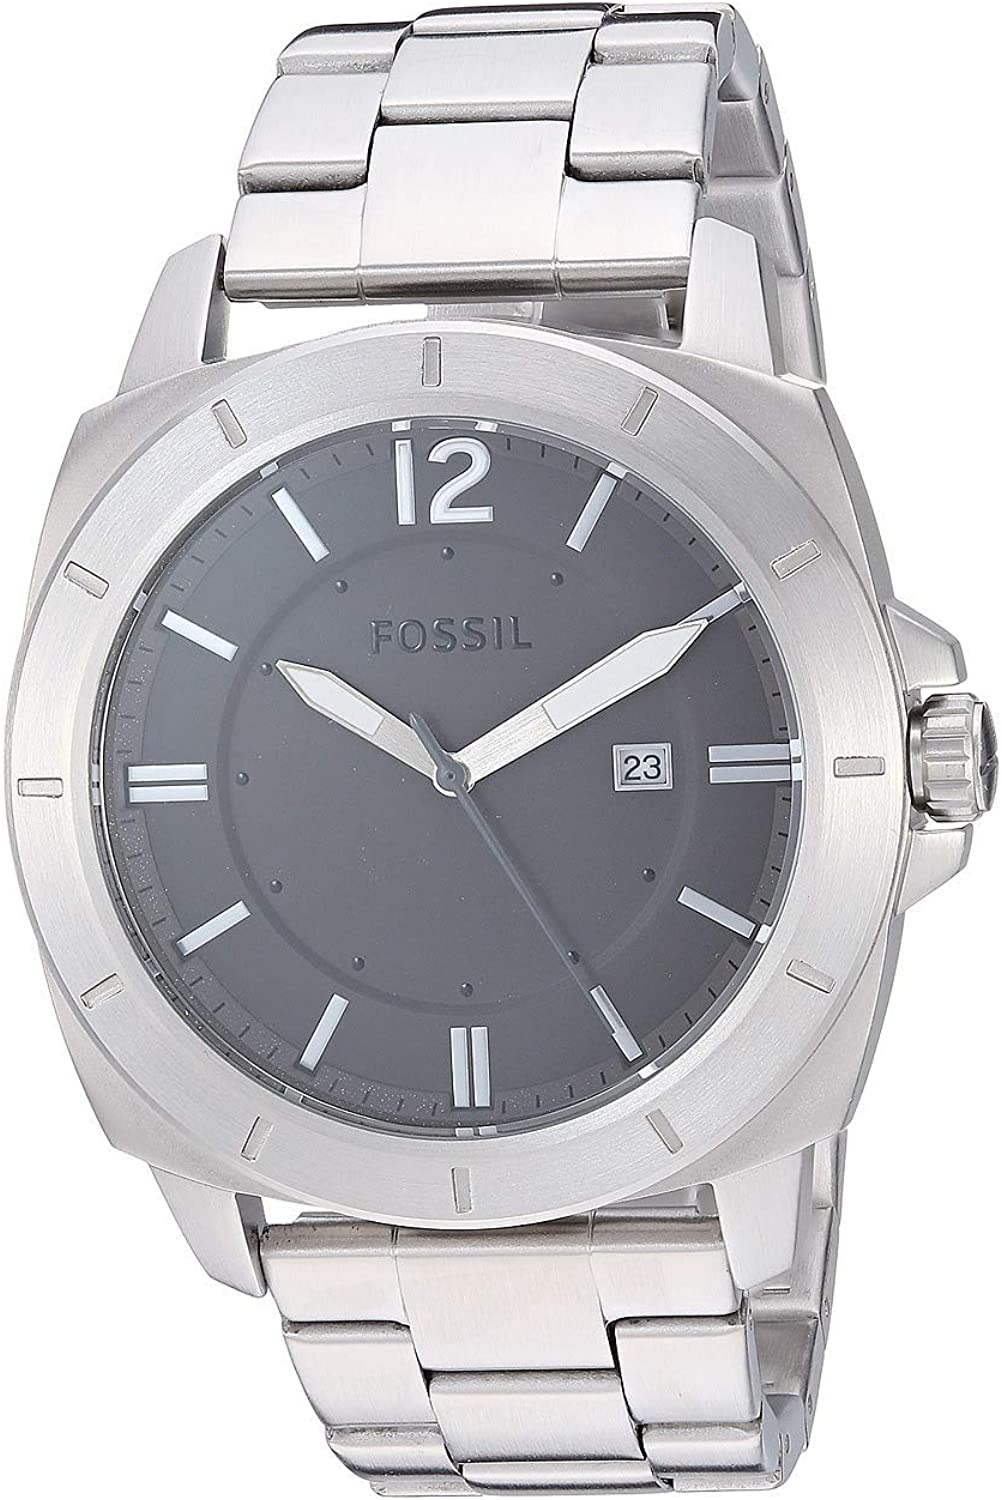 Fossil Privateer Sport Three-Hand Date Stainless Steel Watch - BQ2320